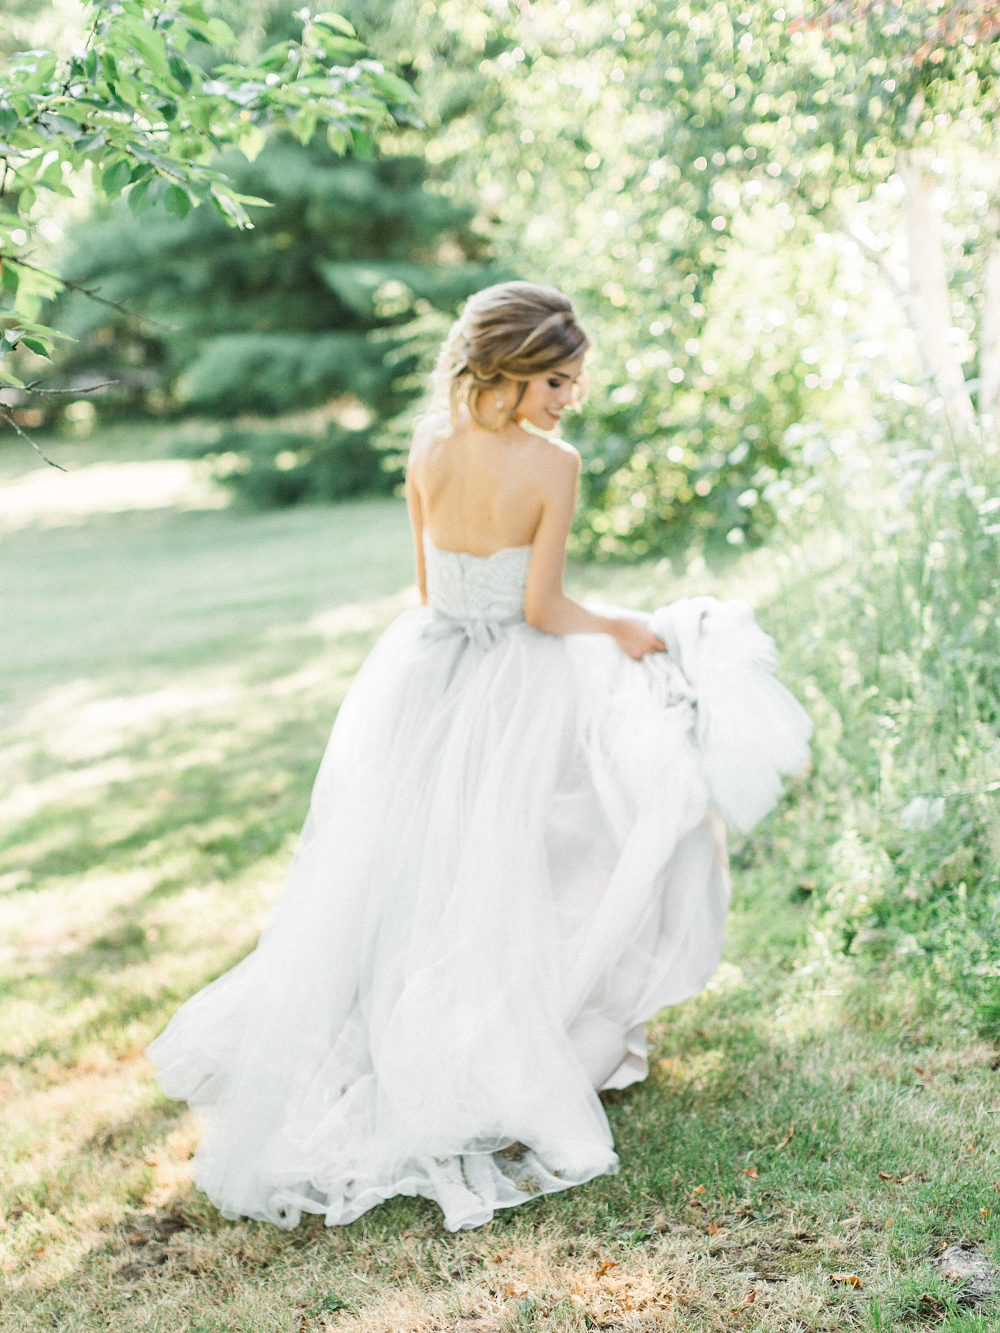 Whimsical Summer Wedding Styled Shoot at Henderson Castle Featured in WeddingDay Magazine Bride wandering